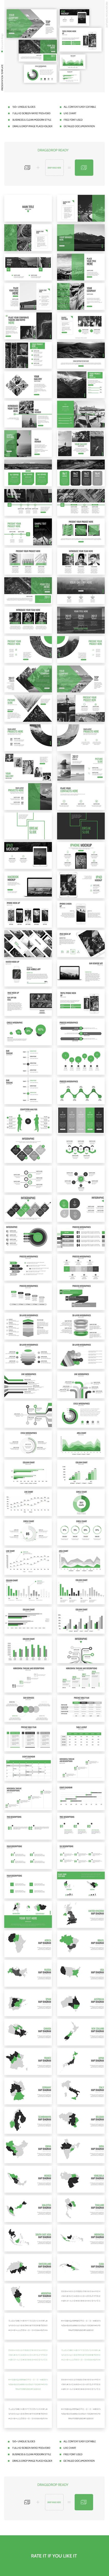 #Report Pad Marketing Presentation Template - #Business #PowerPoint Templates